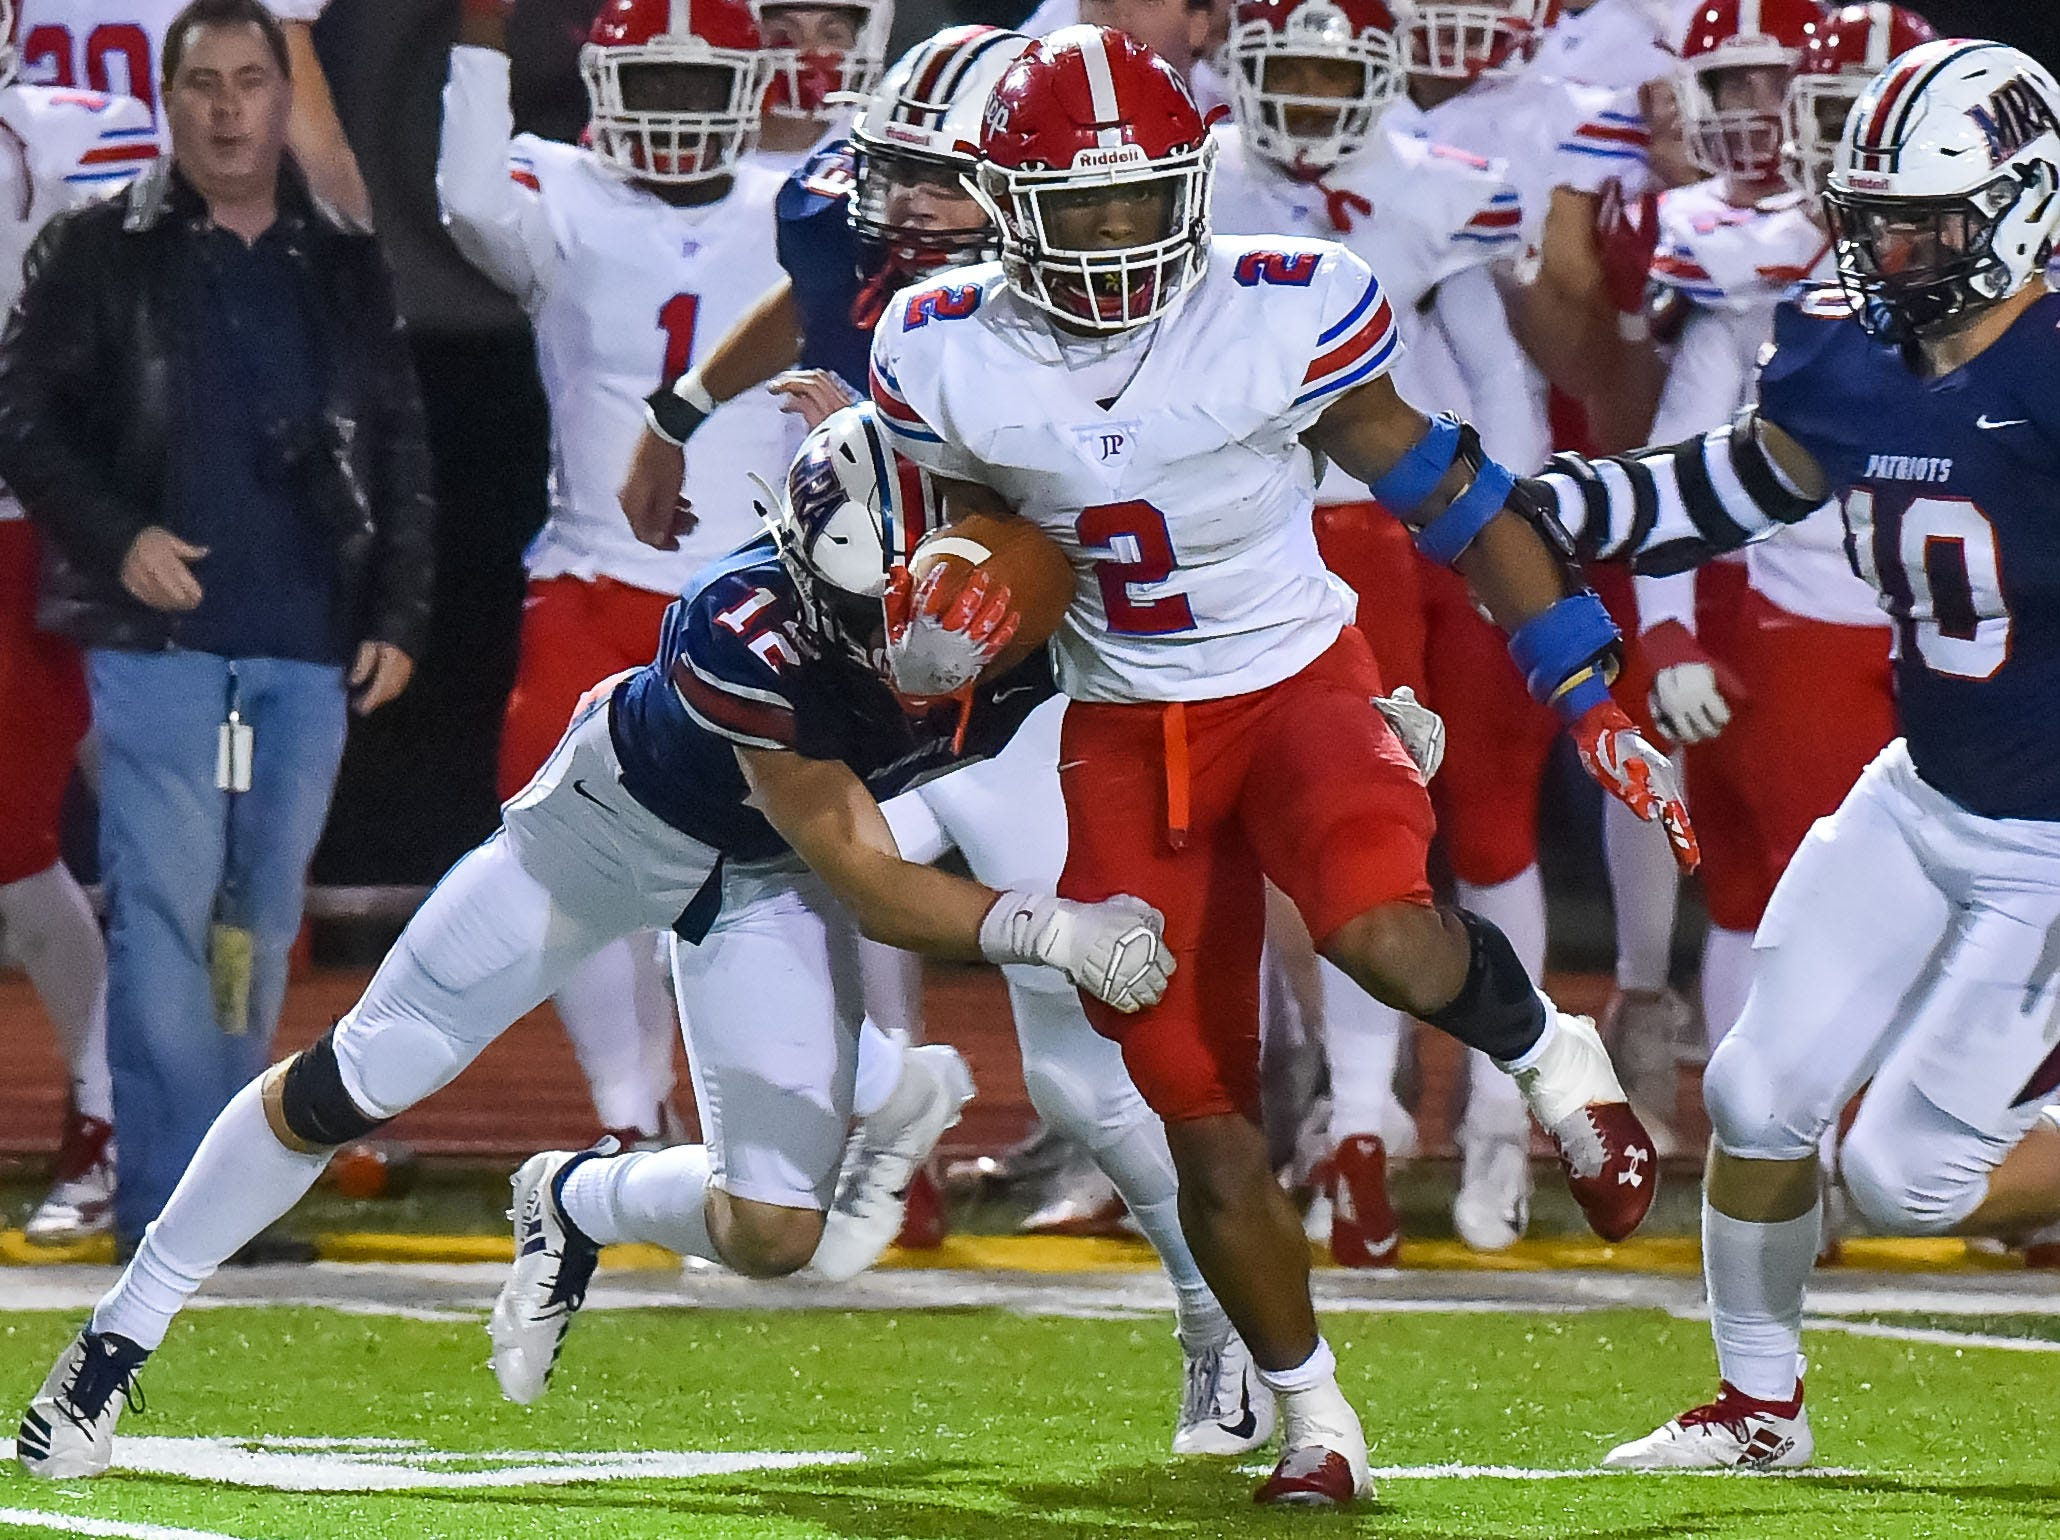 Jackson Prep's Jerrion Ealy (2) cuts back against Madison Ridgeland Academy during the MAIS Class AAAA Championship Football game held at Jackson Academy in Jackson, MS, Thursday November 16, 2018.(Bob Smith-For The Clarion Ledger)